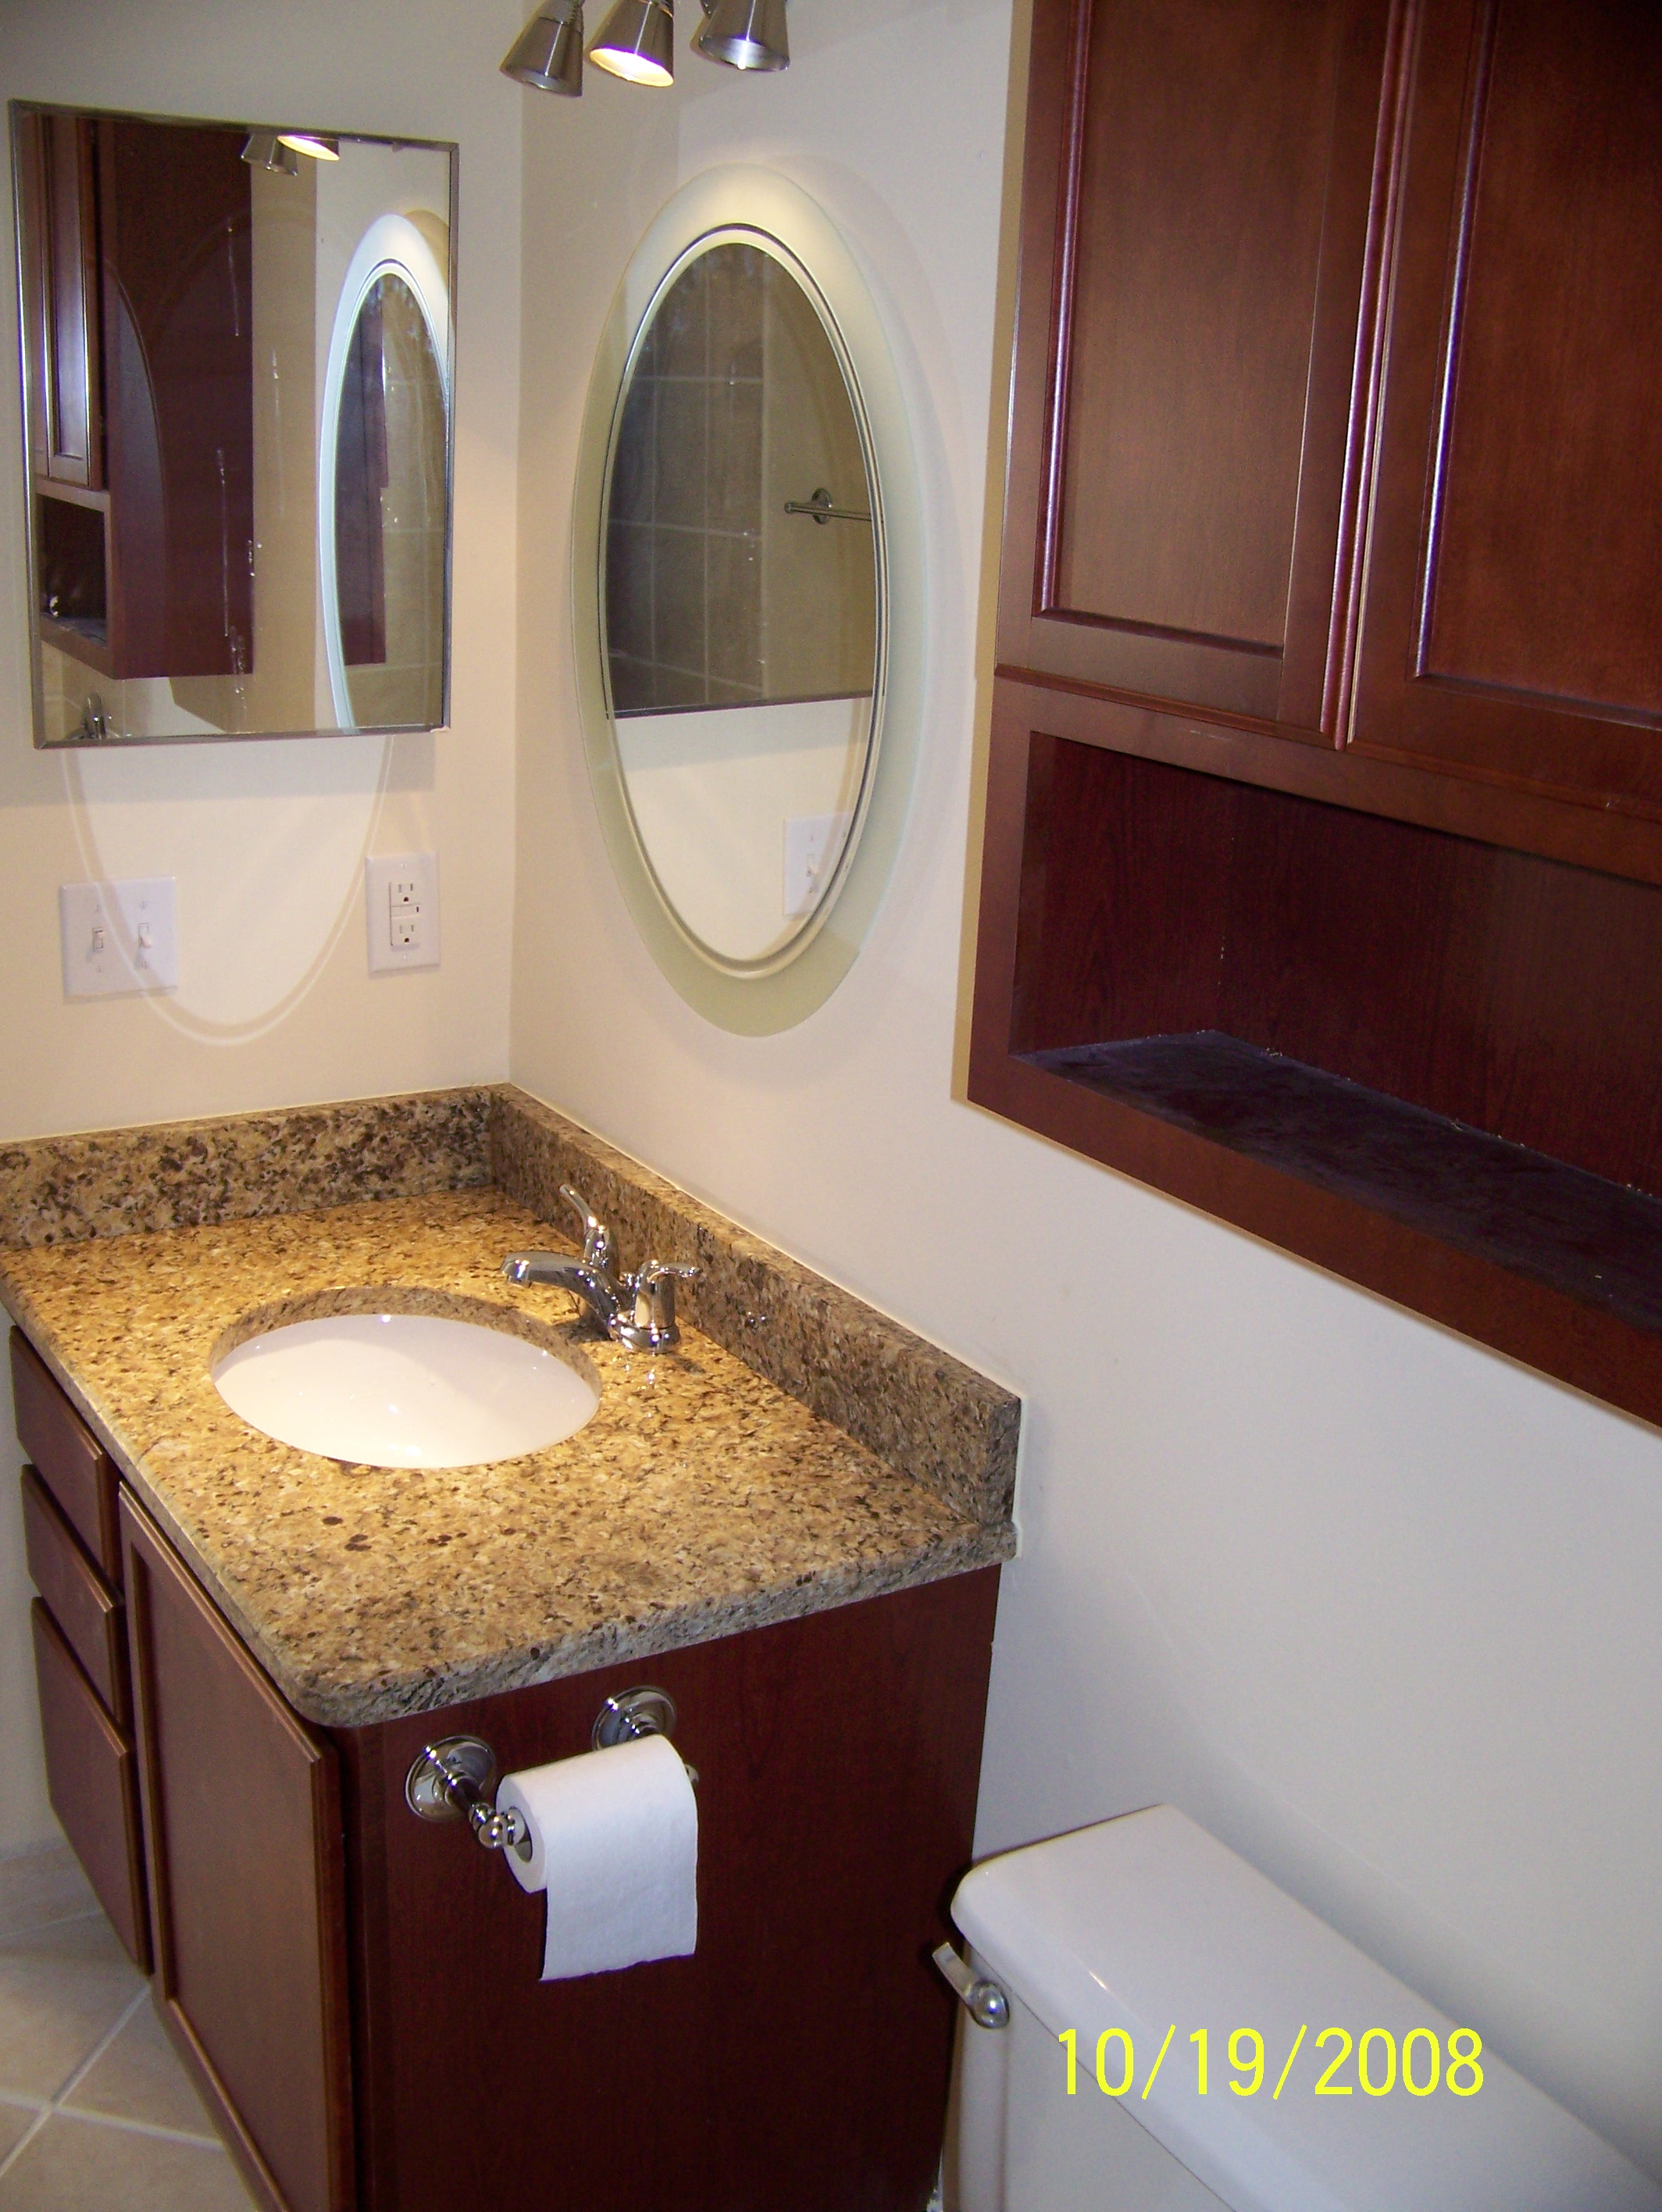 Canton Michigan Bathroom Remodeling. www.parkohome.com  picture do not copy